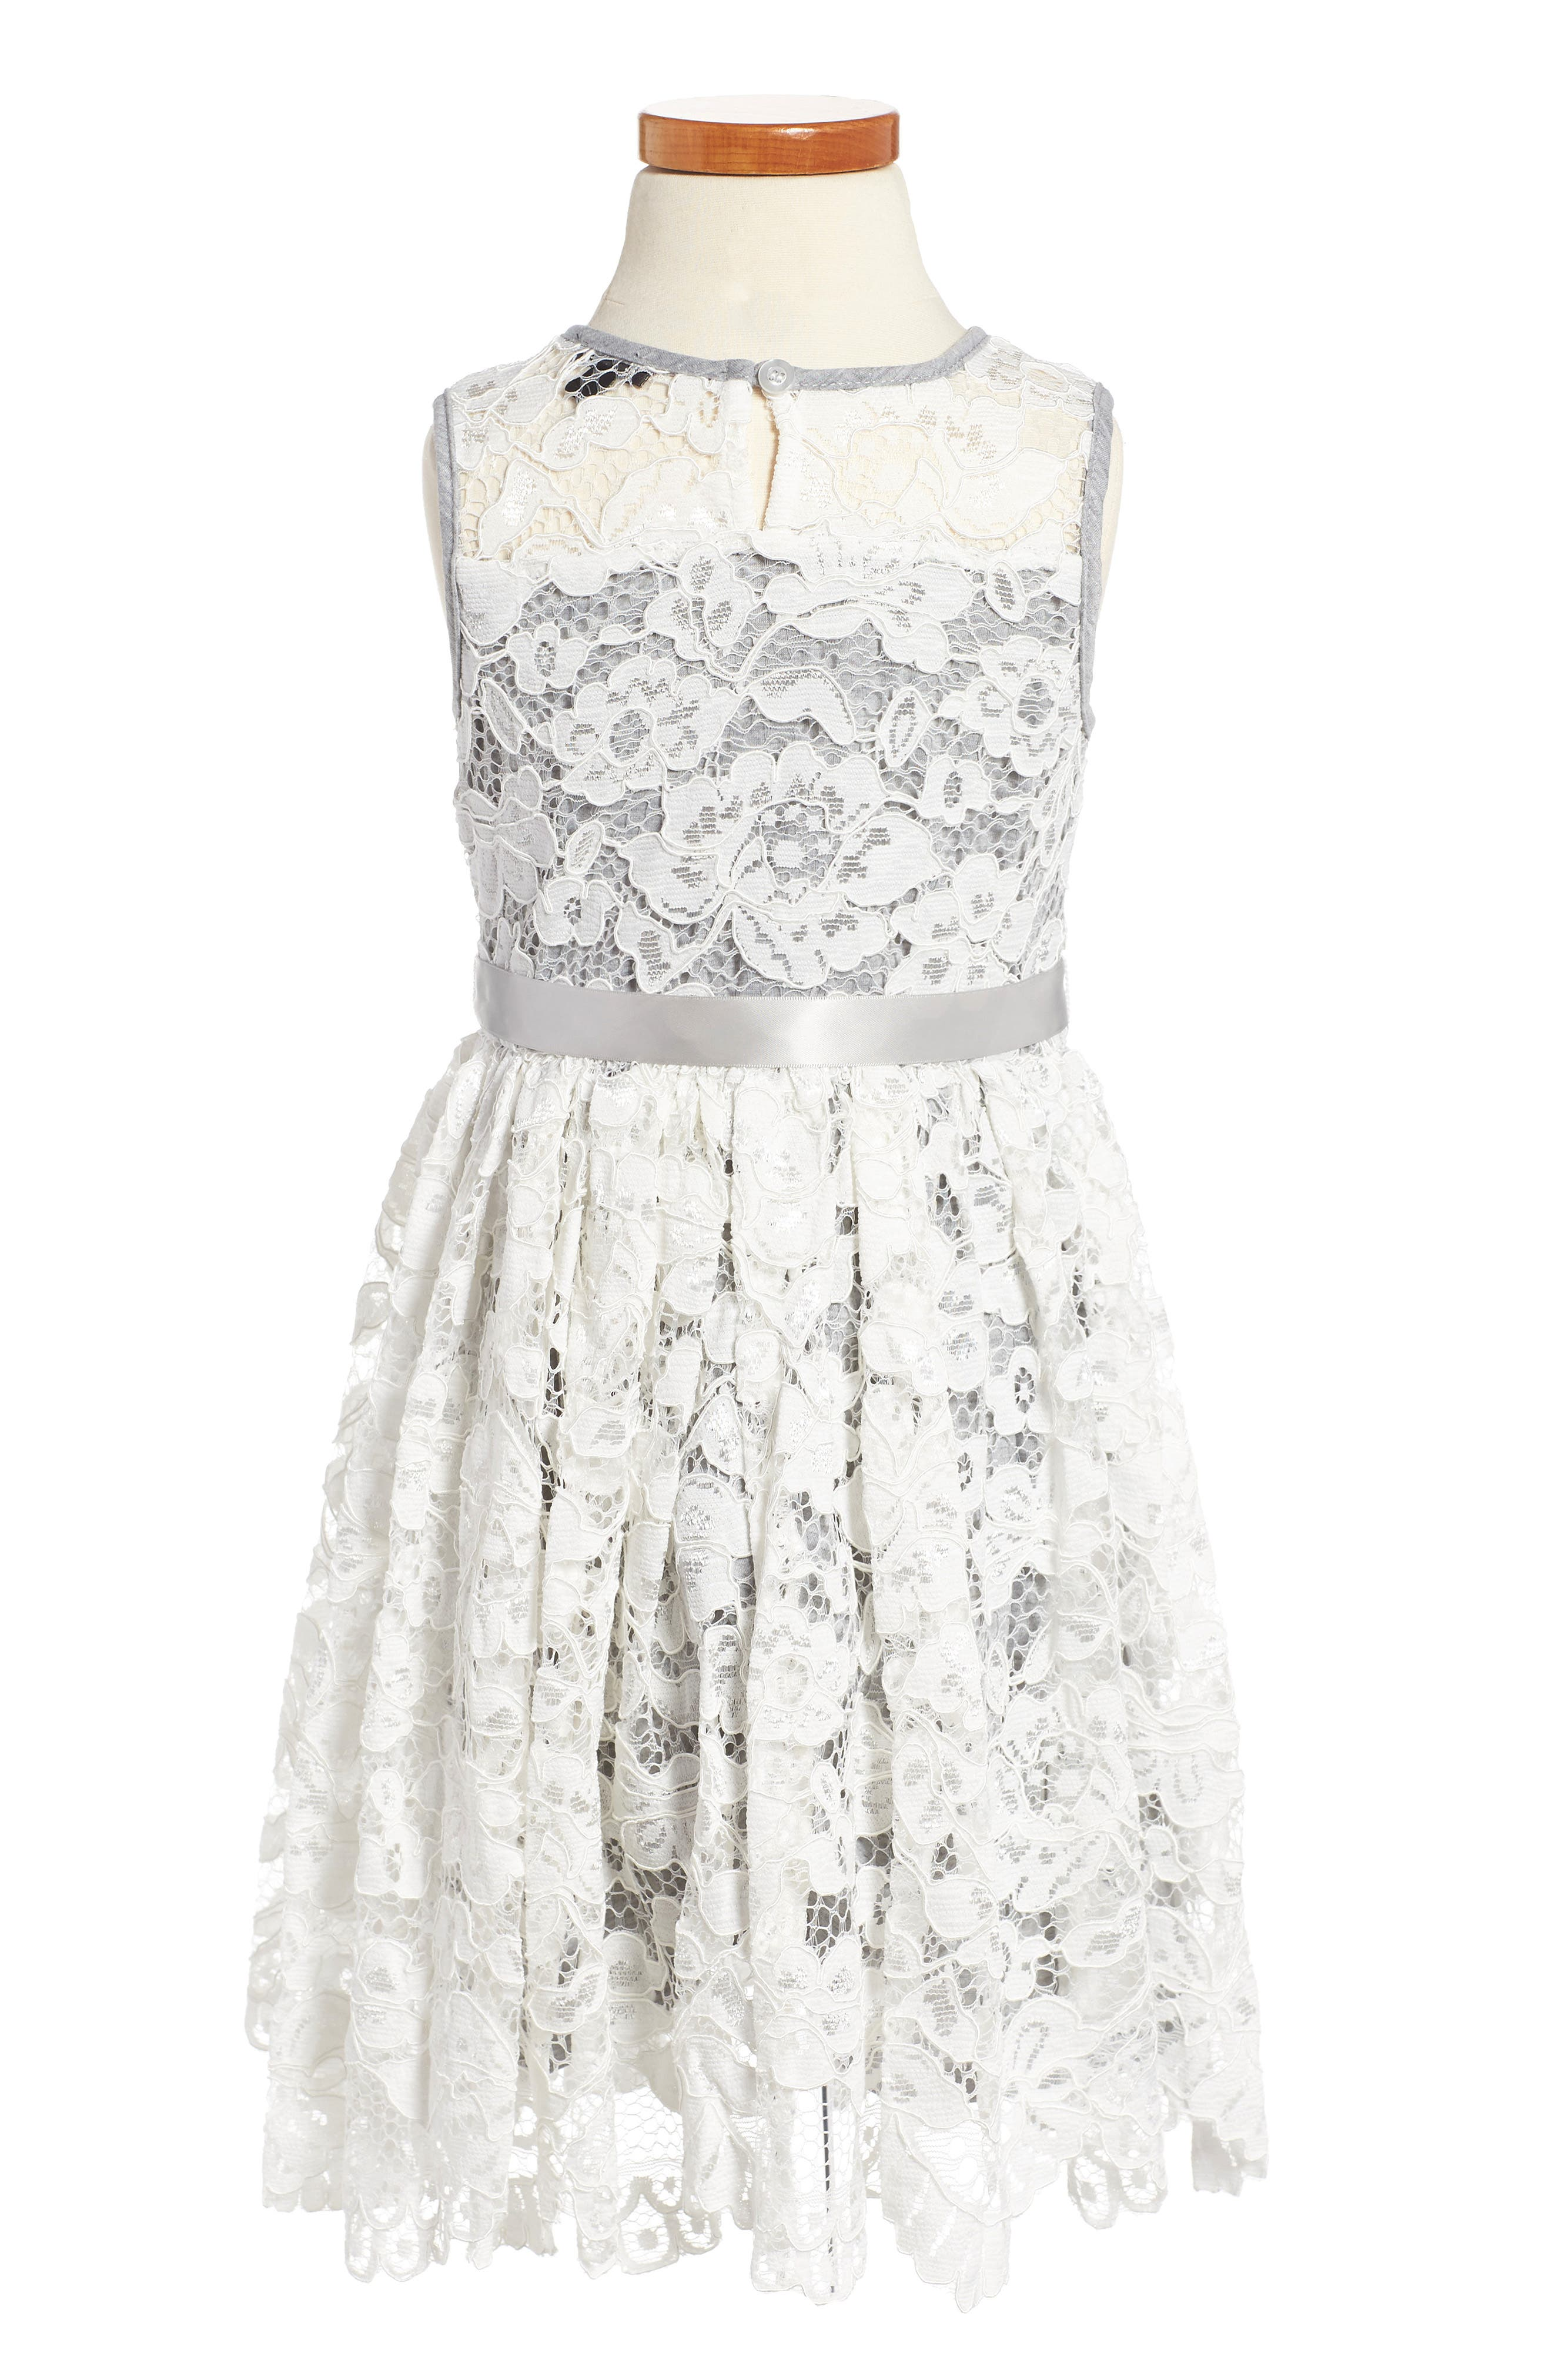 Scalloped Floral Lace Dress,                             Alternate thumbnail 2, color,                             Ivory/ Grey